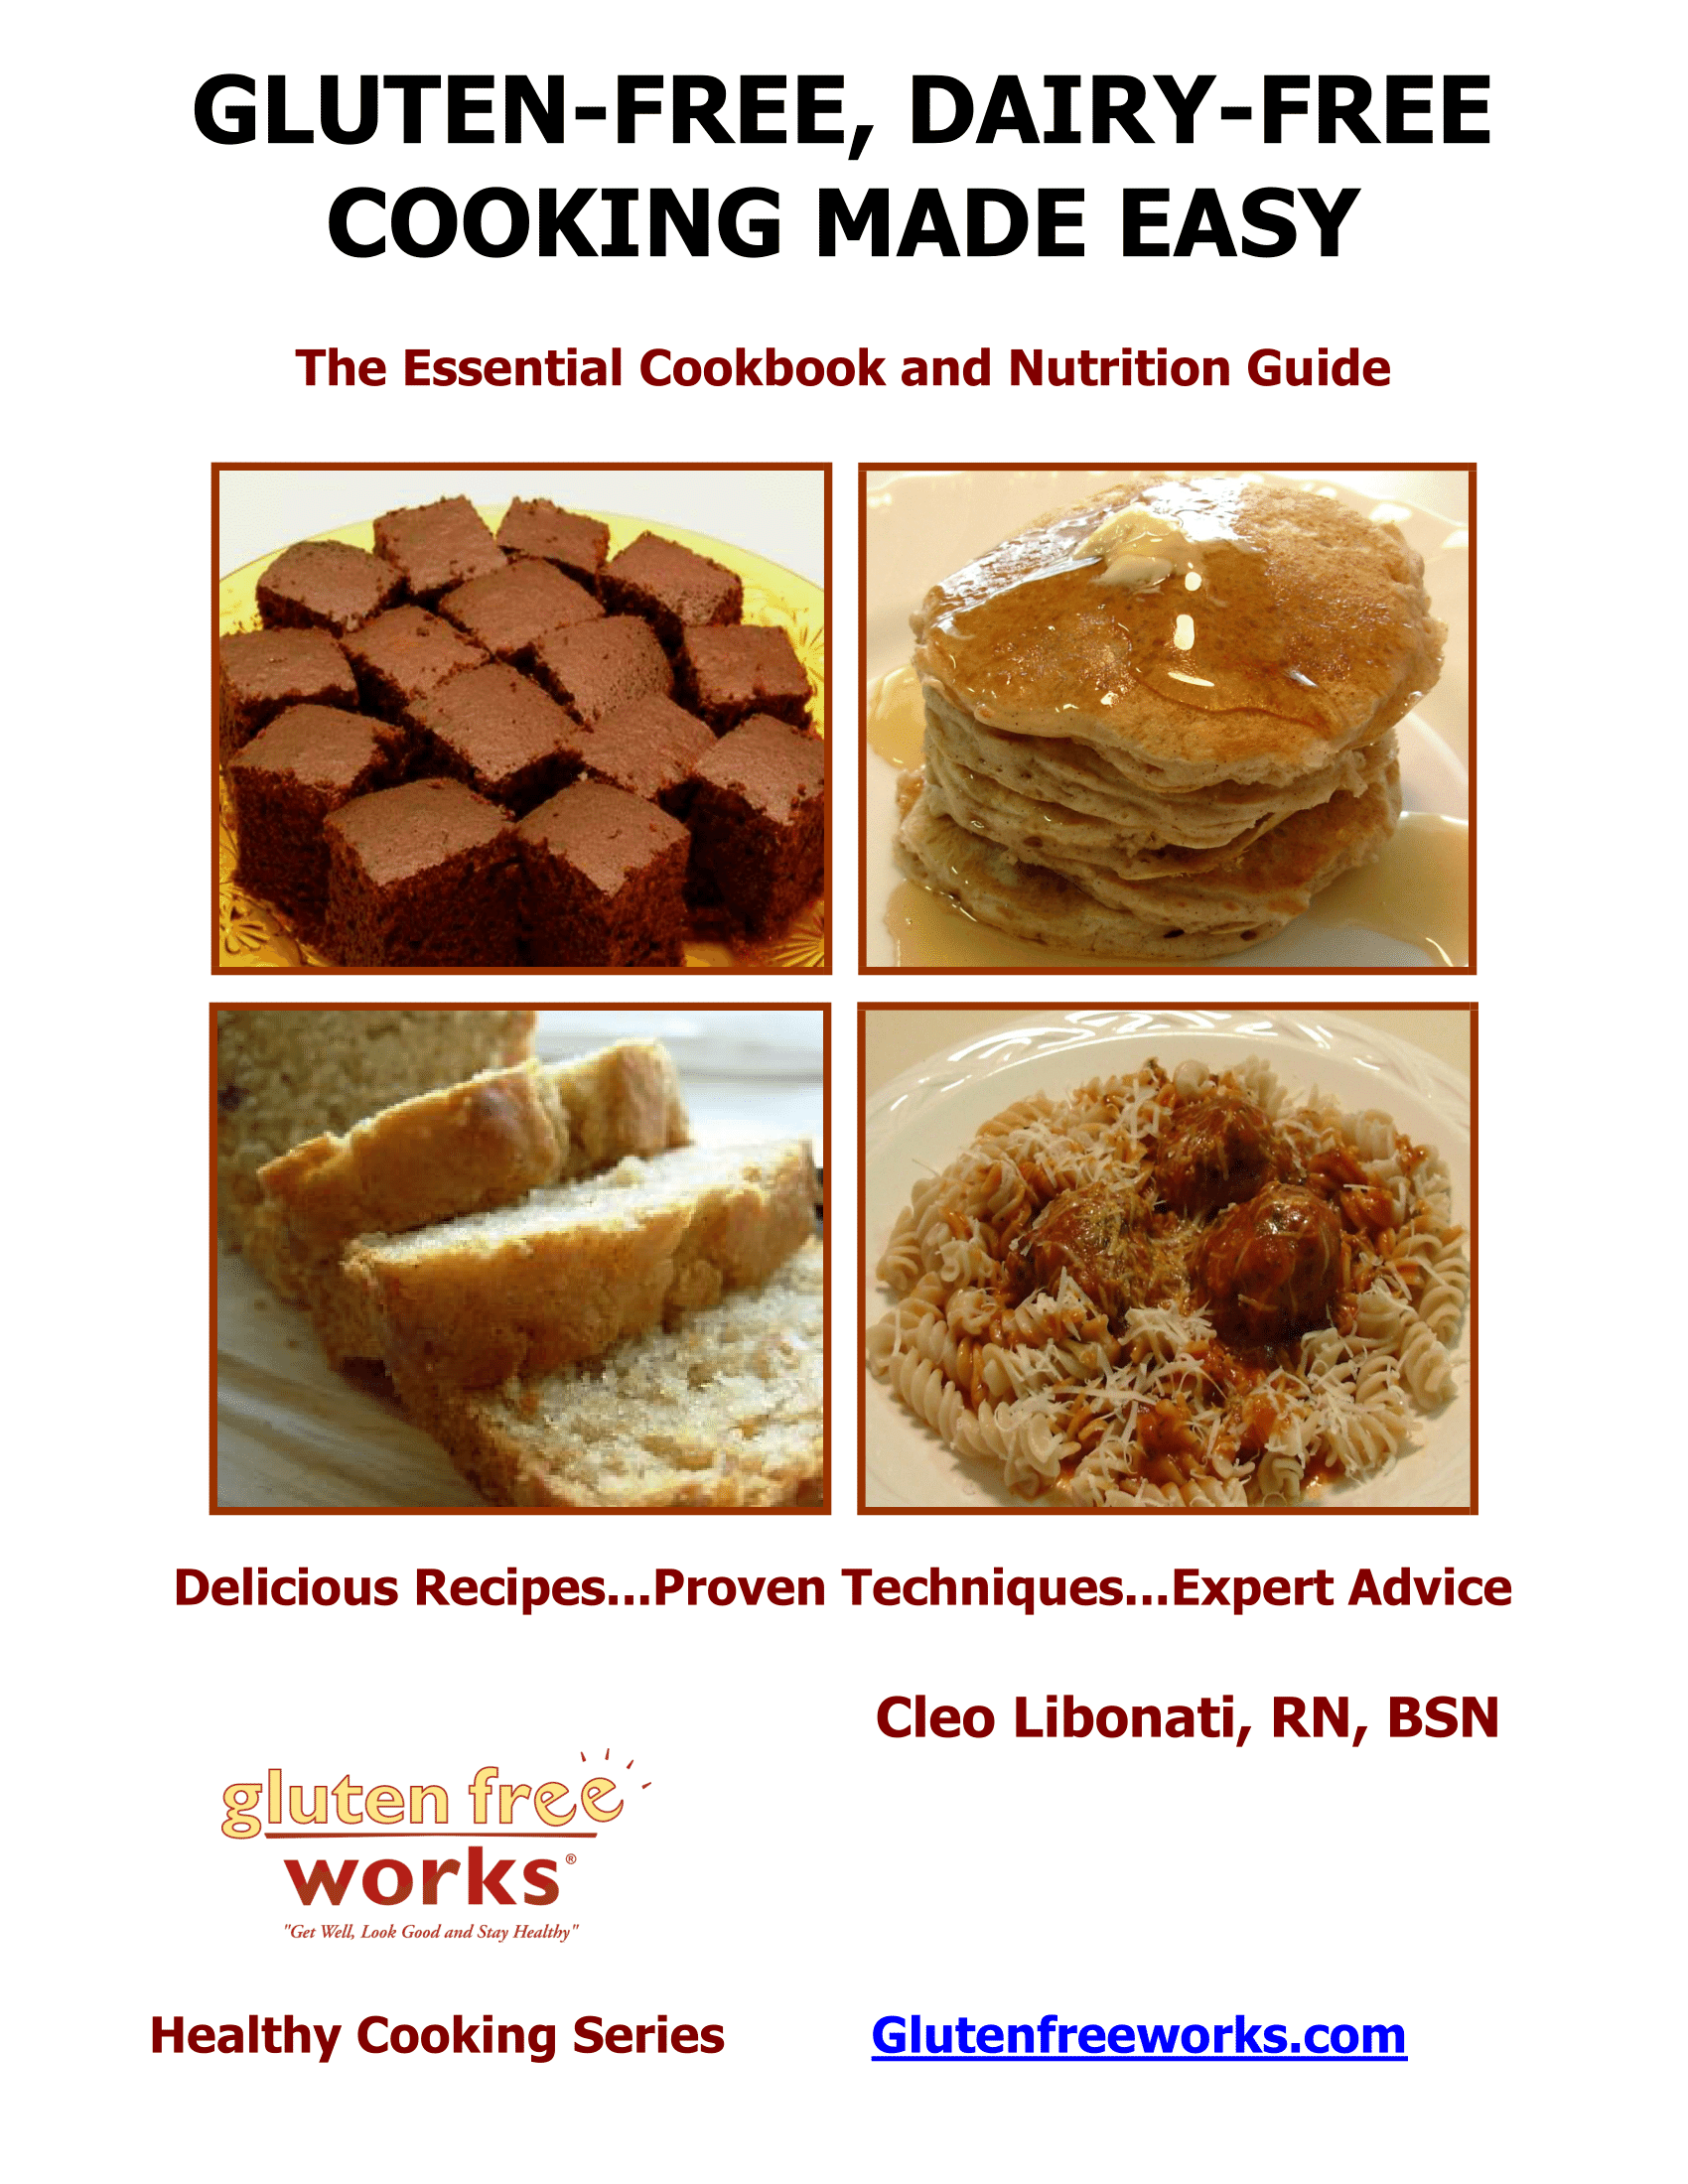 Gluten free dairy free cooking made easy e book gluten free works gluten free dairy free cooking made easy 3rd forumfinder Image collections